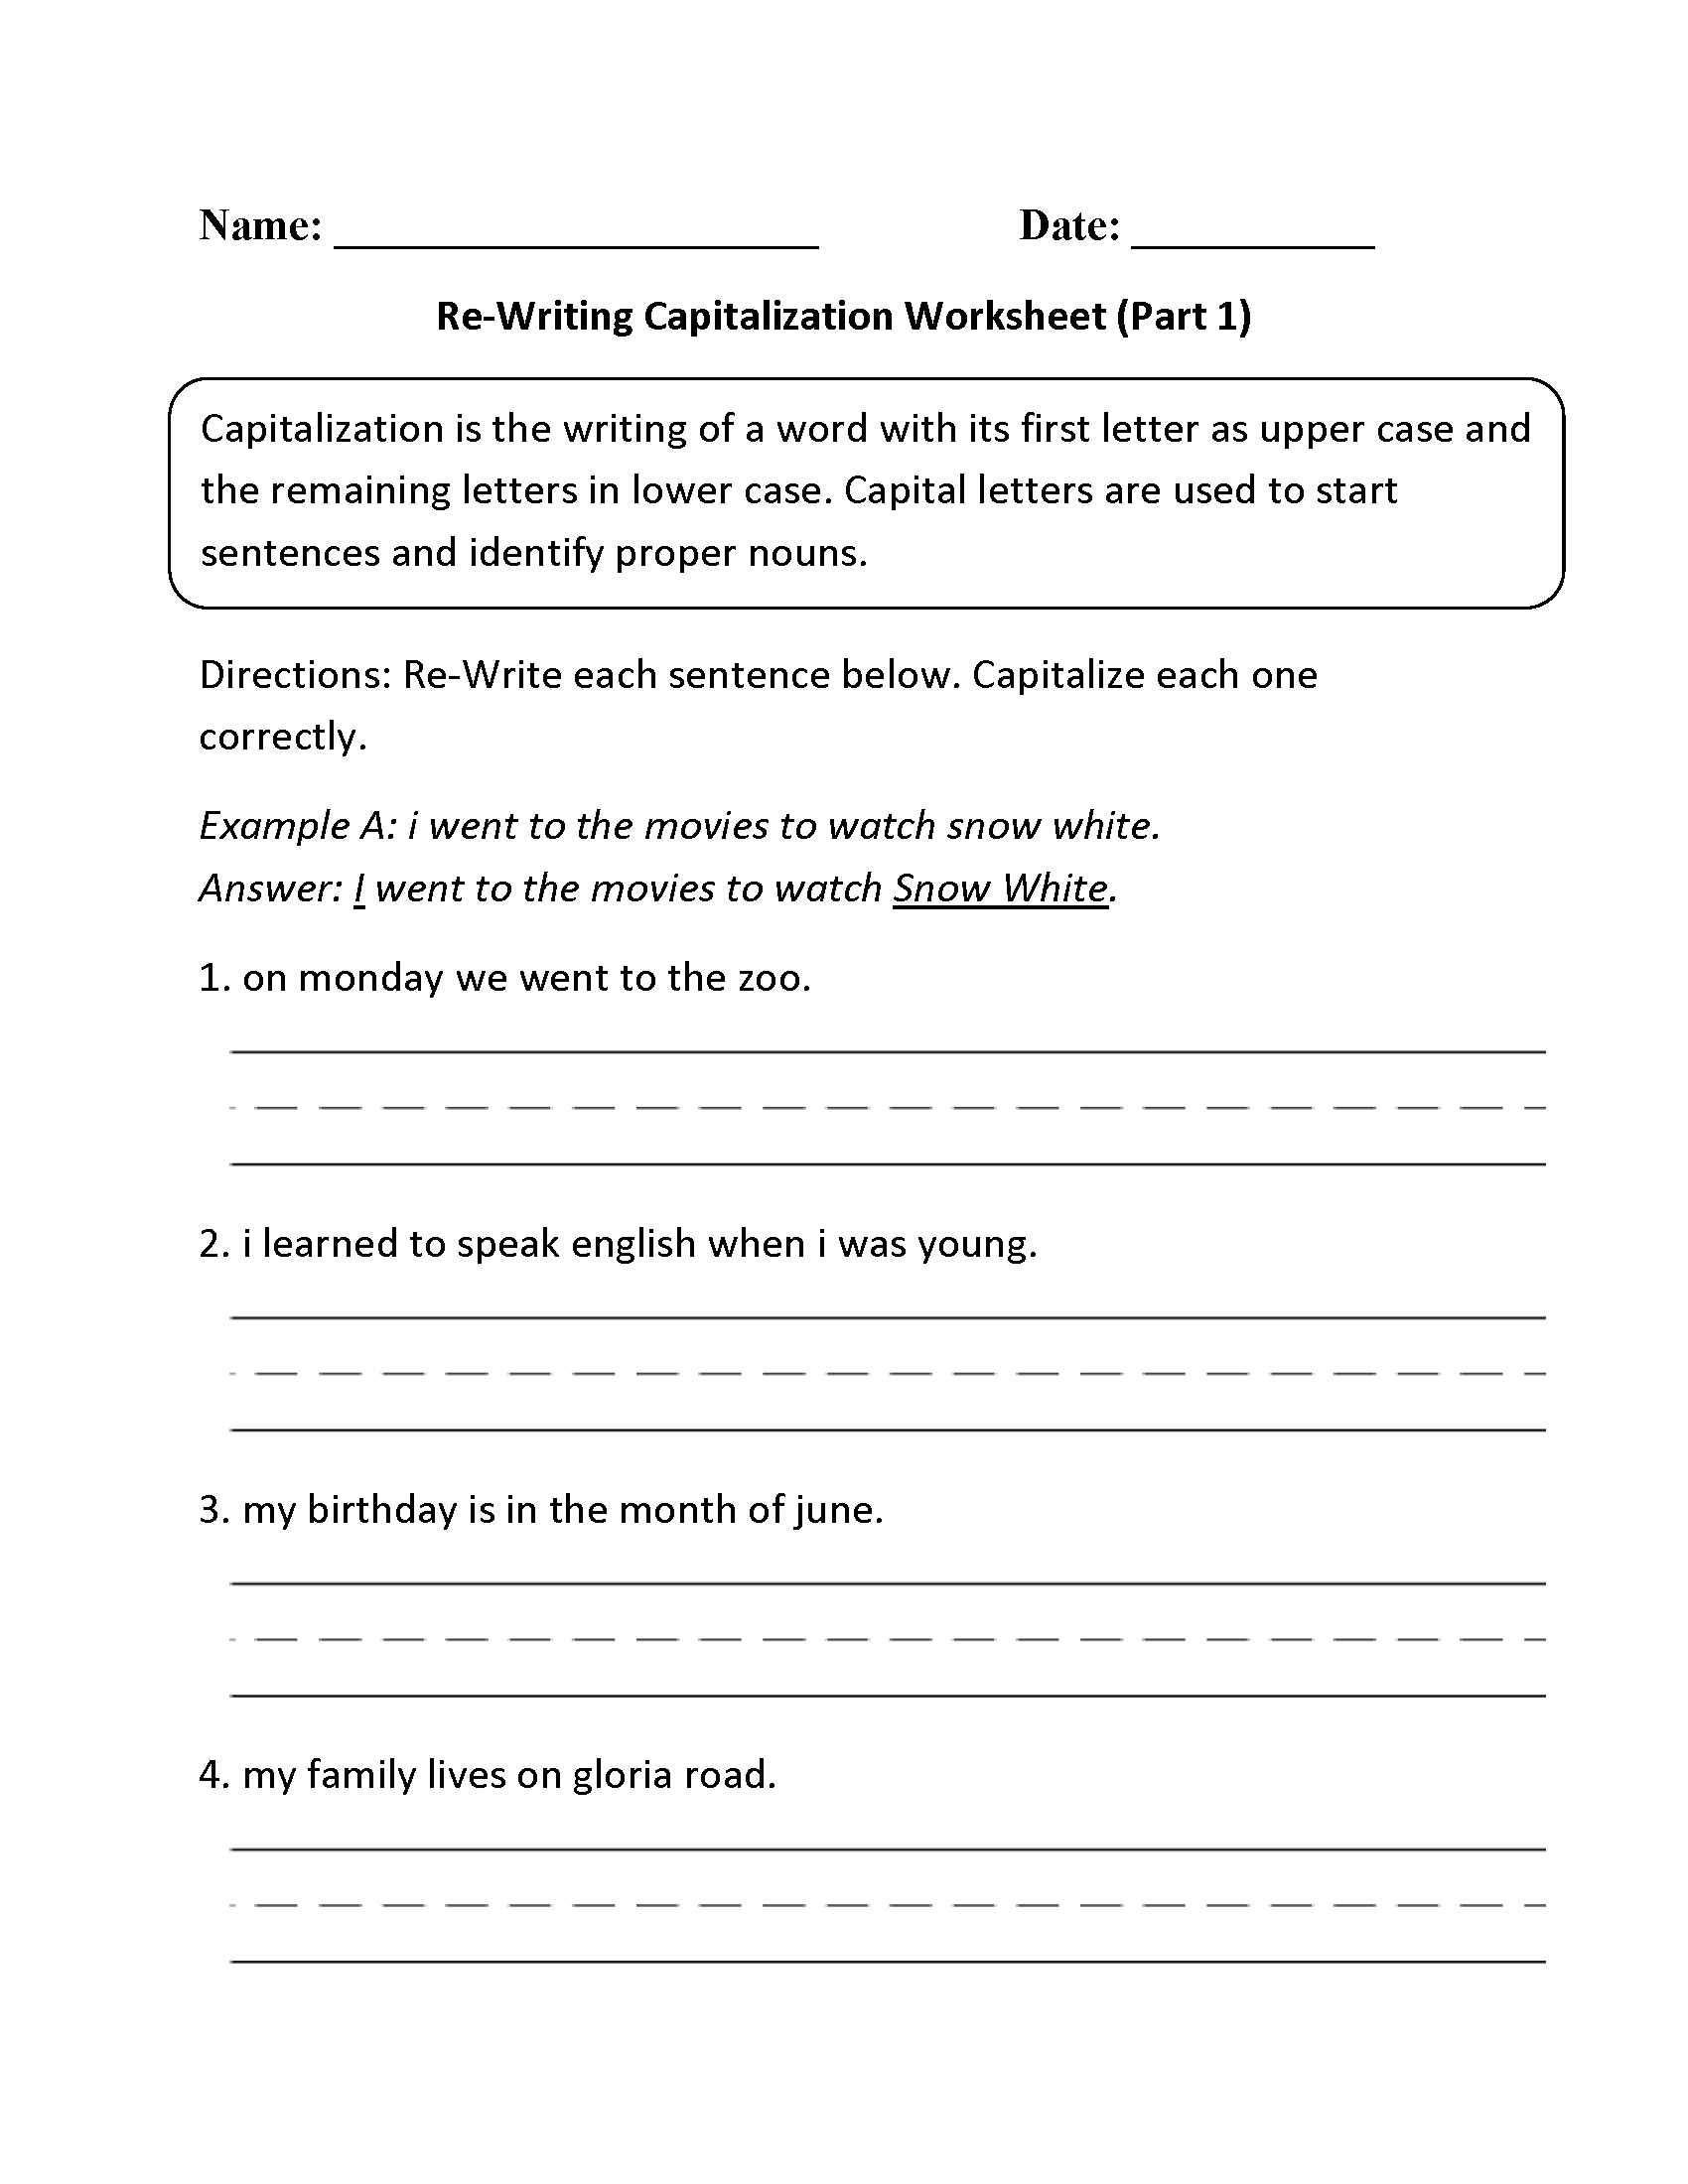 Worksheets Sentence Correction Worksheets englishlinx com capitalization worksheets worksheet part 1